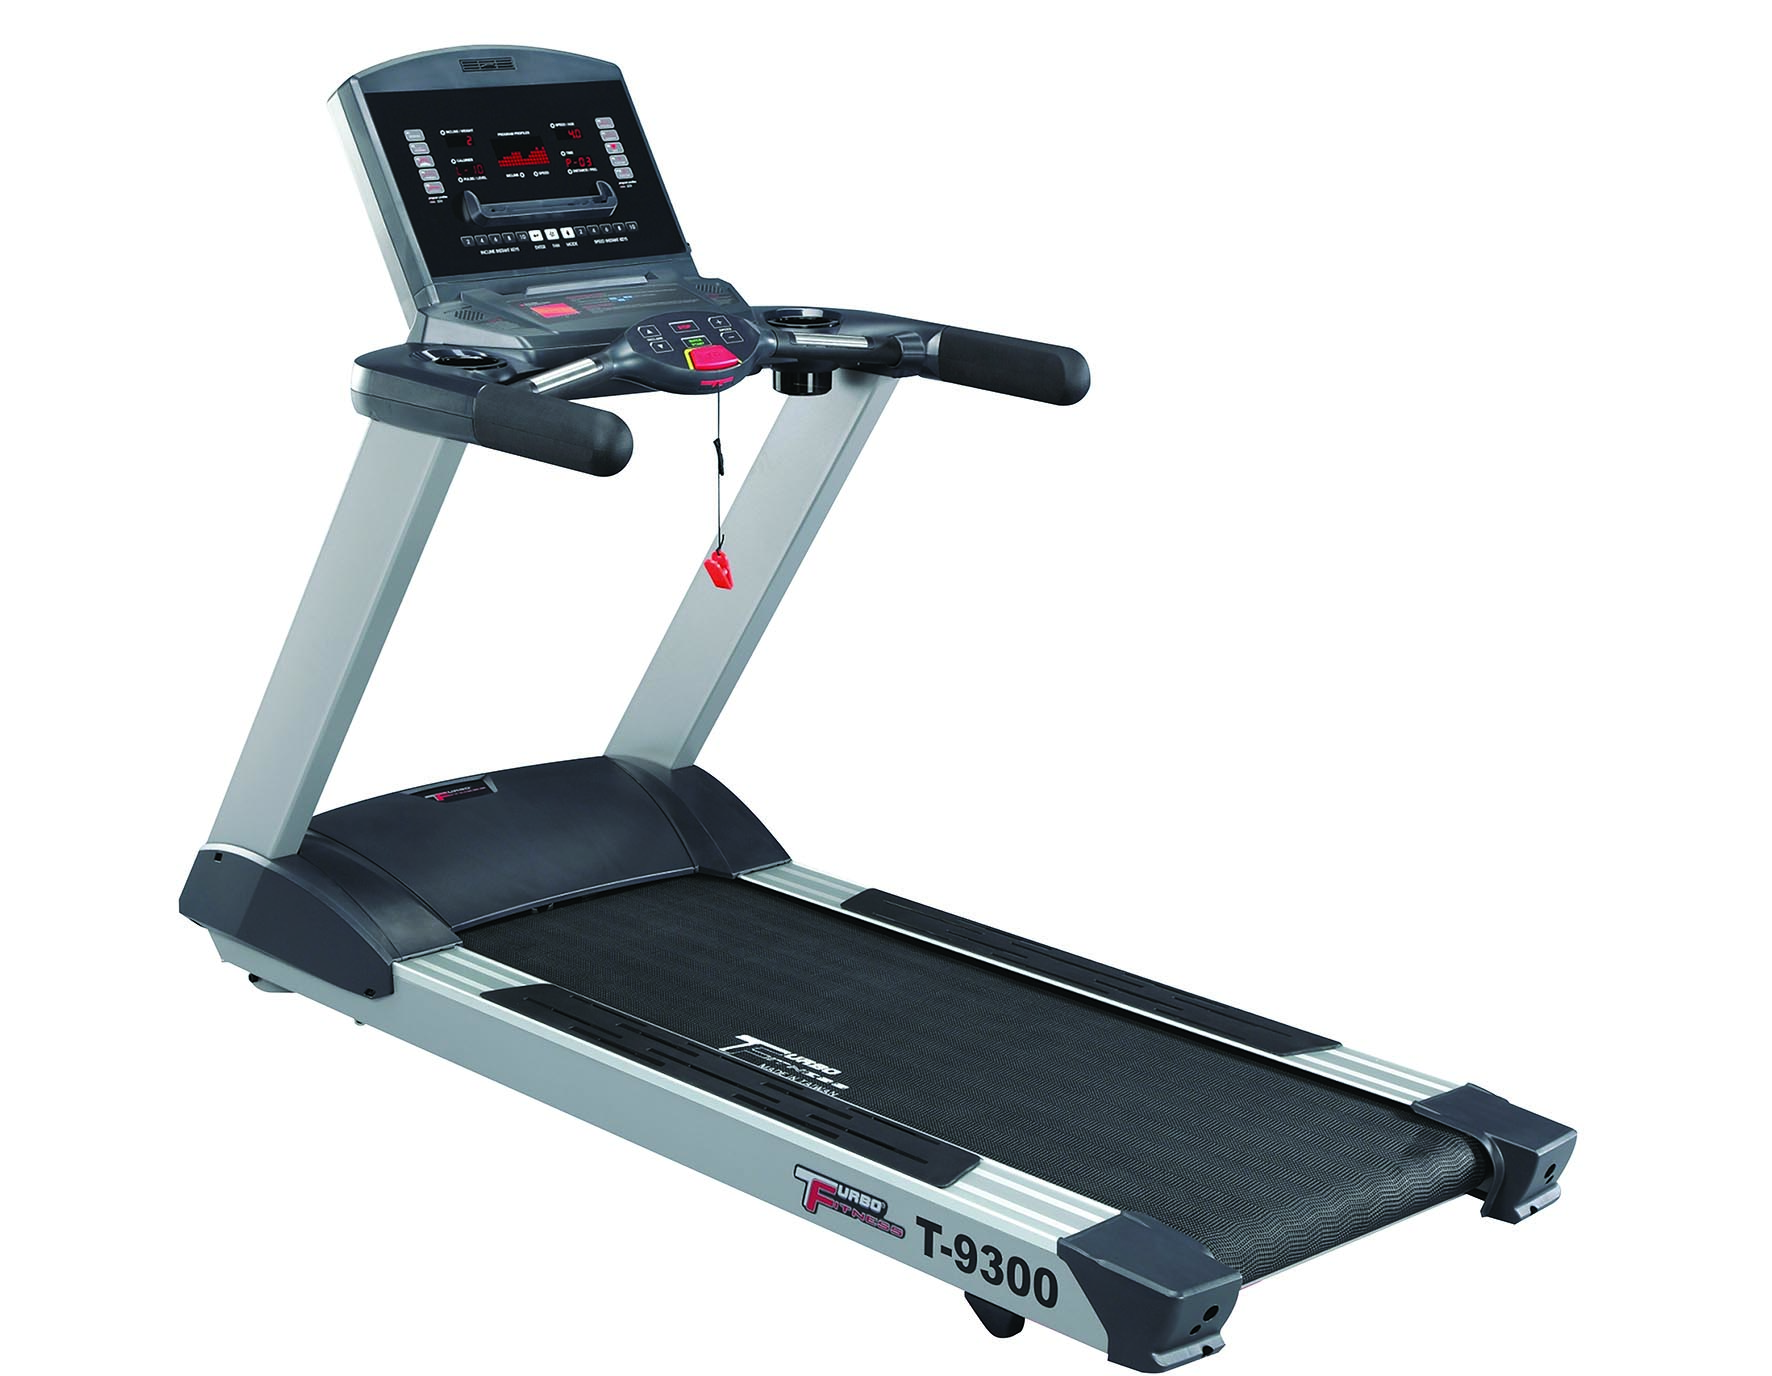 Turbo Fitness 9300 treadmills